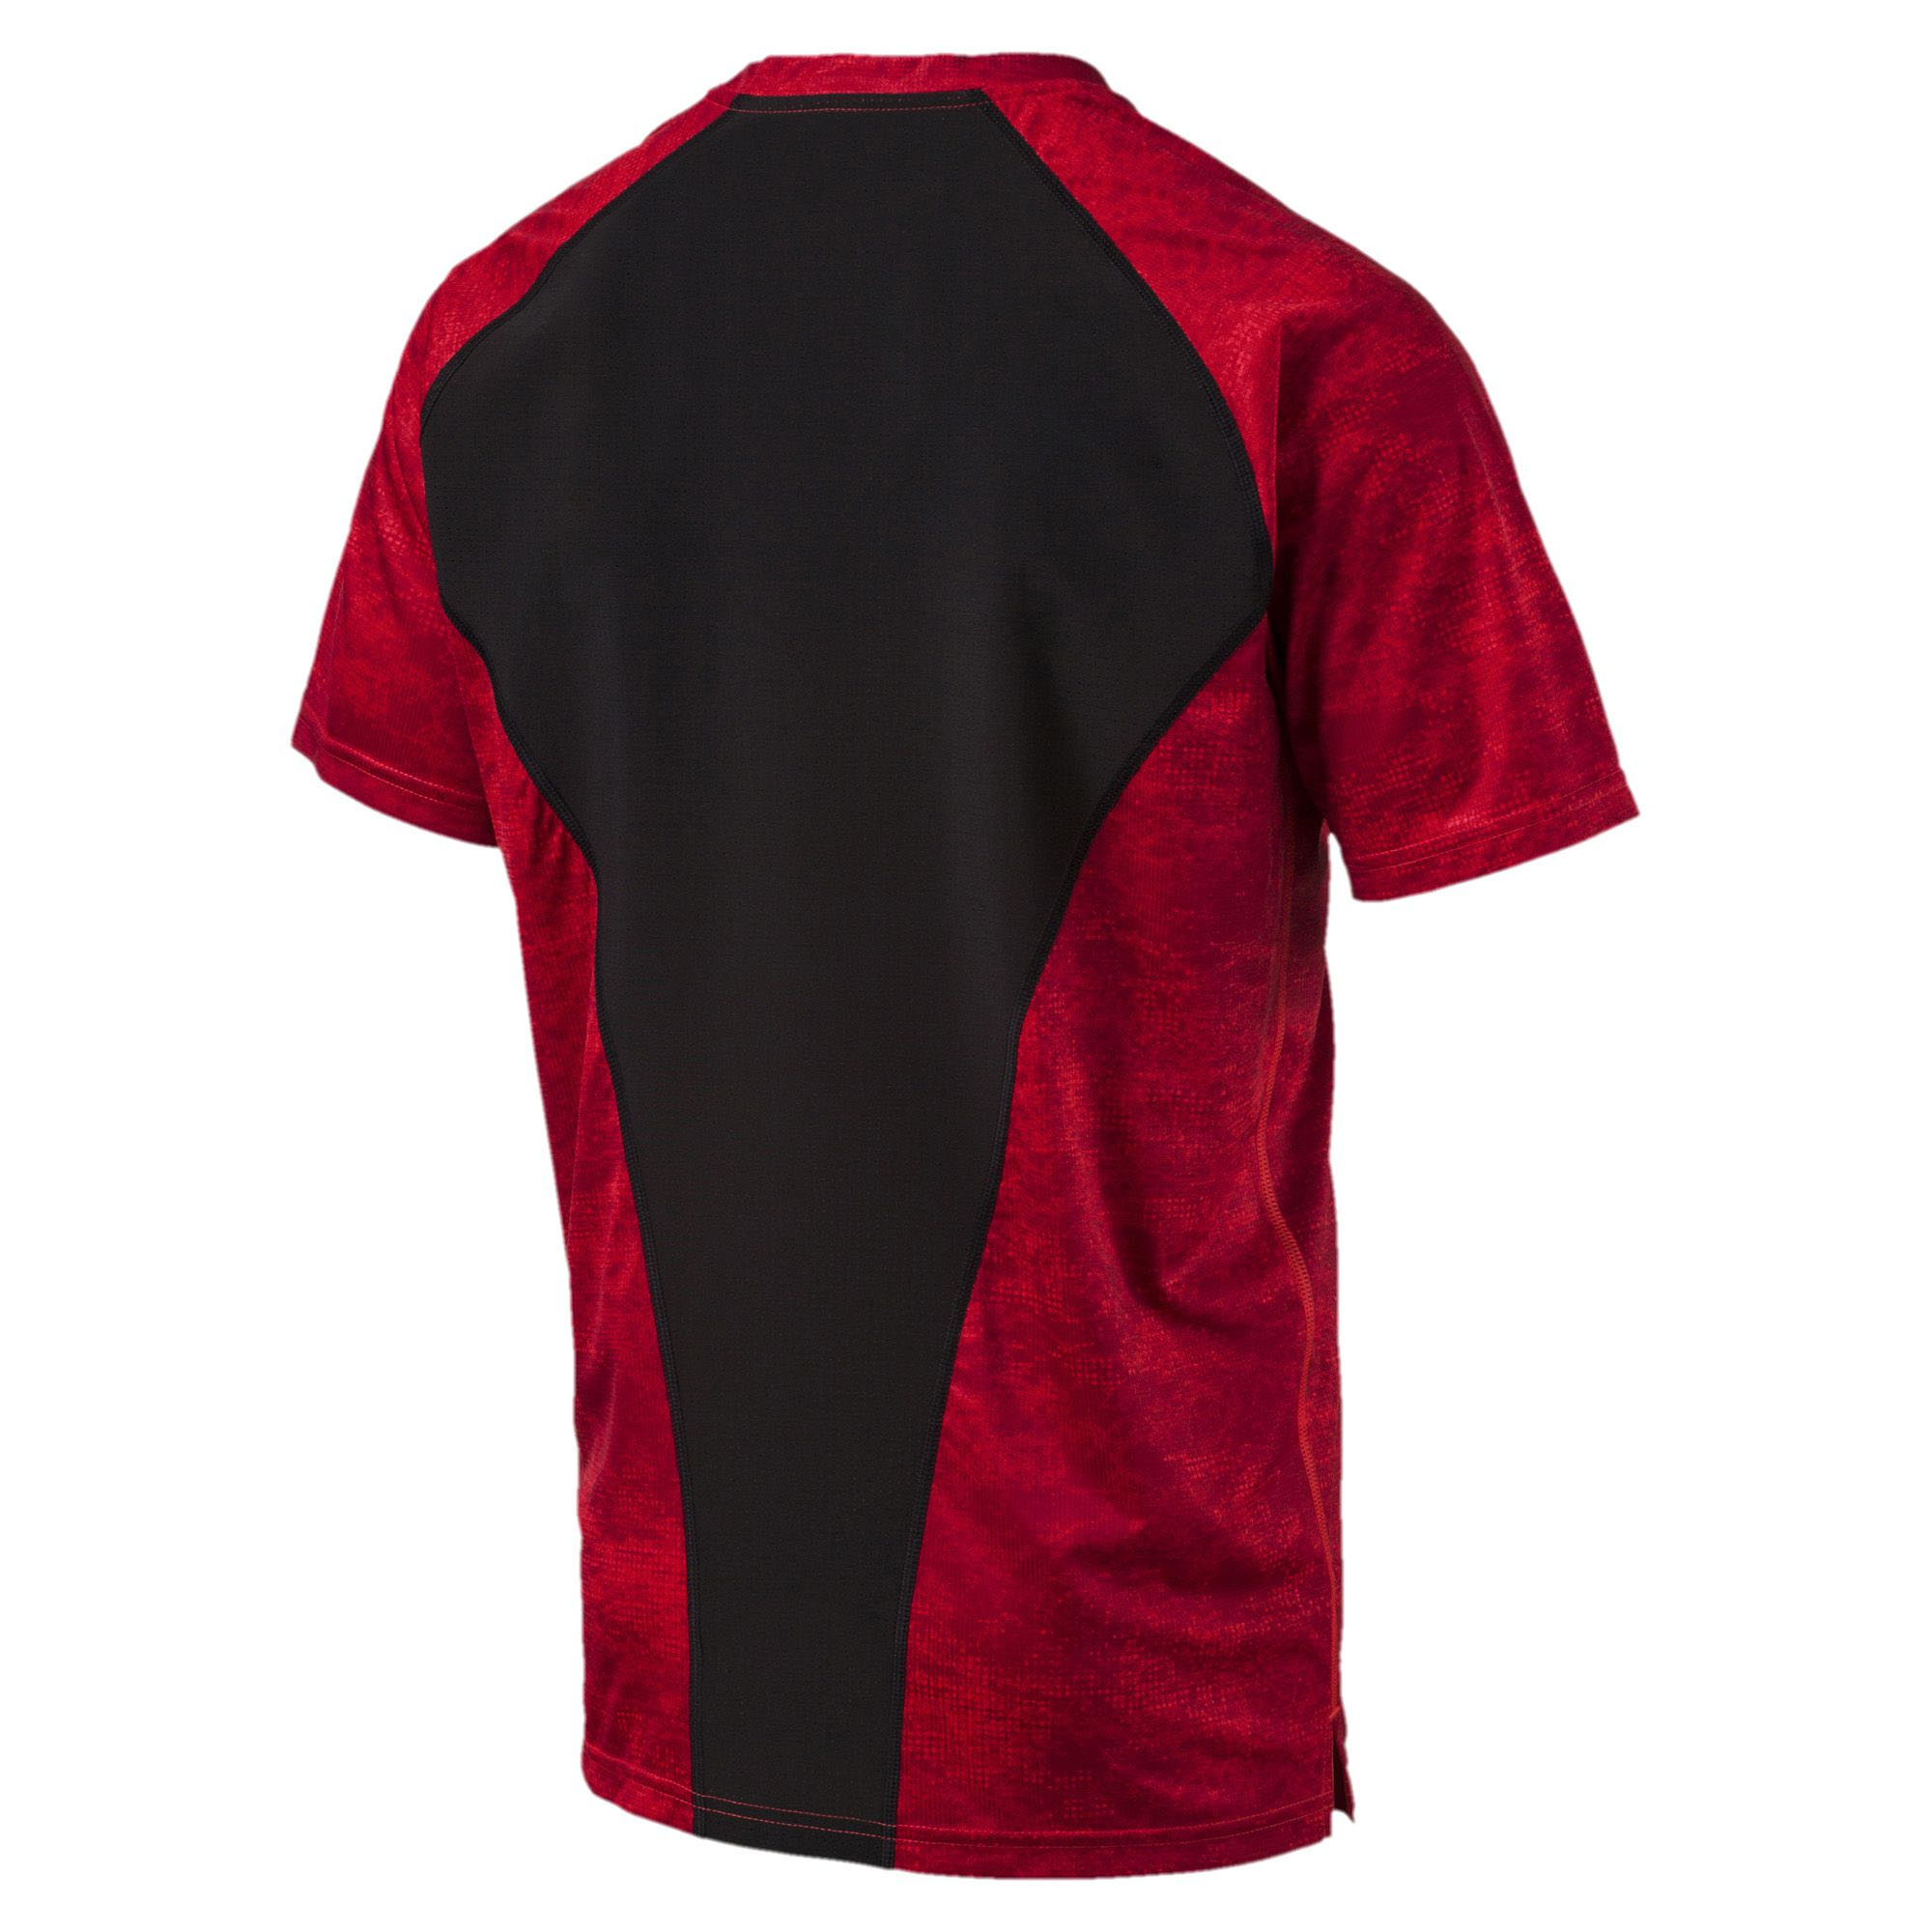 Puma-Vent-Graphic-Mens-Running-Exercise-Fitness-Training-Shirt-Red thumbnail 4